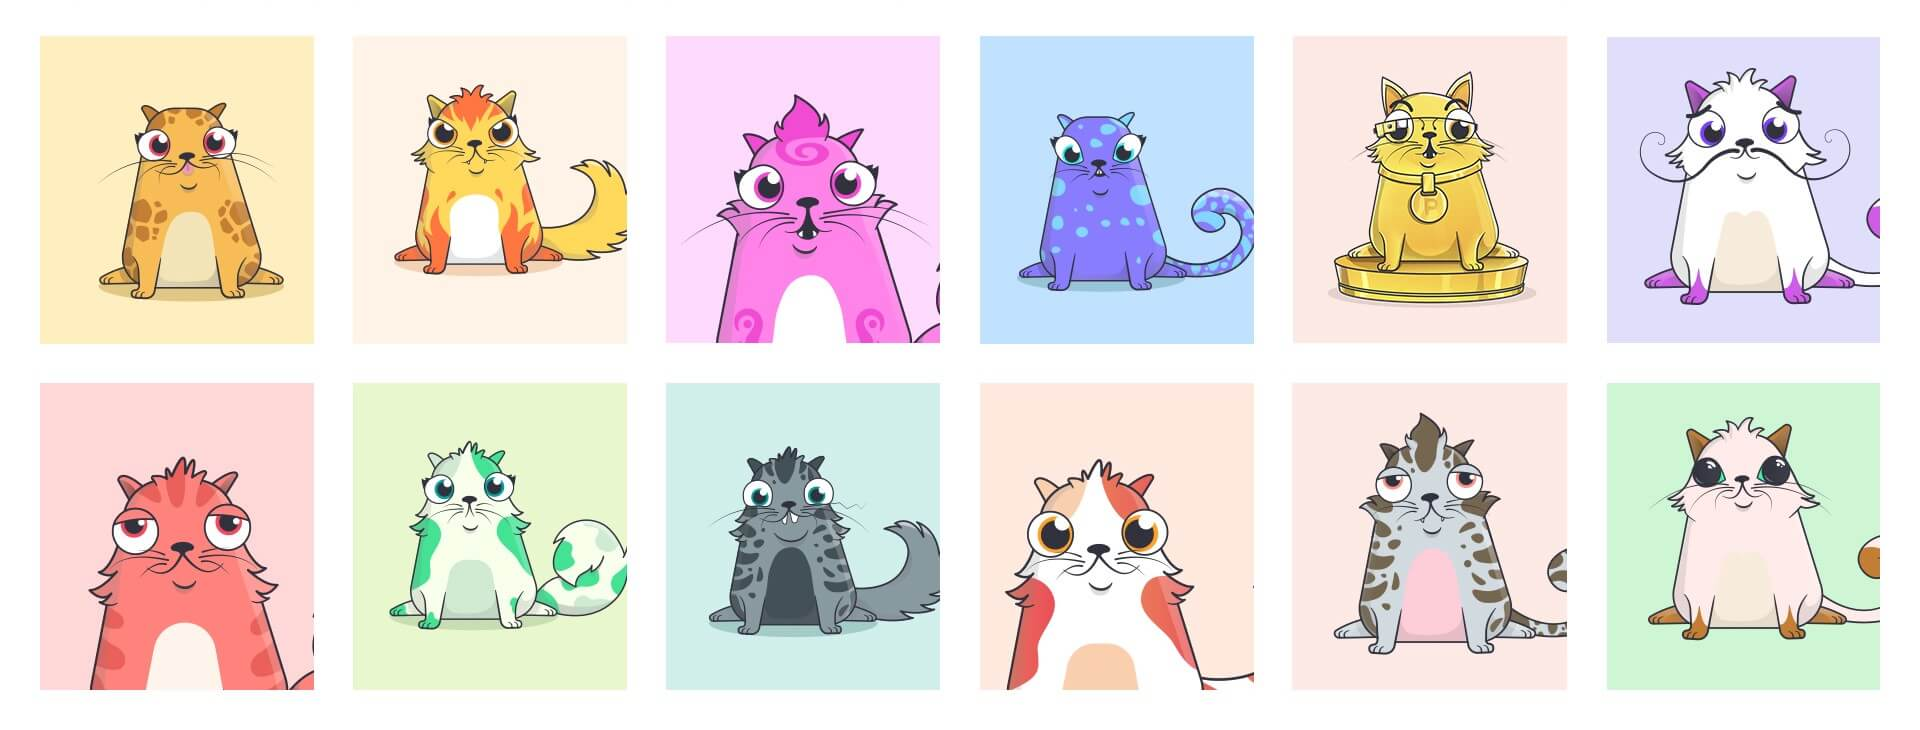 NFT cryptokitties